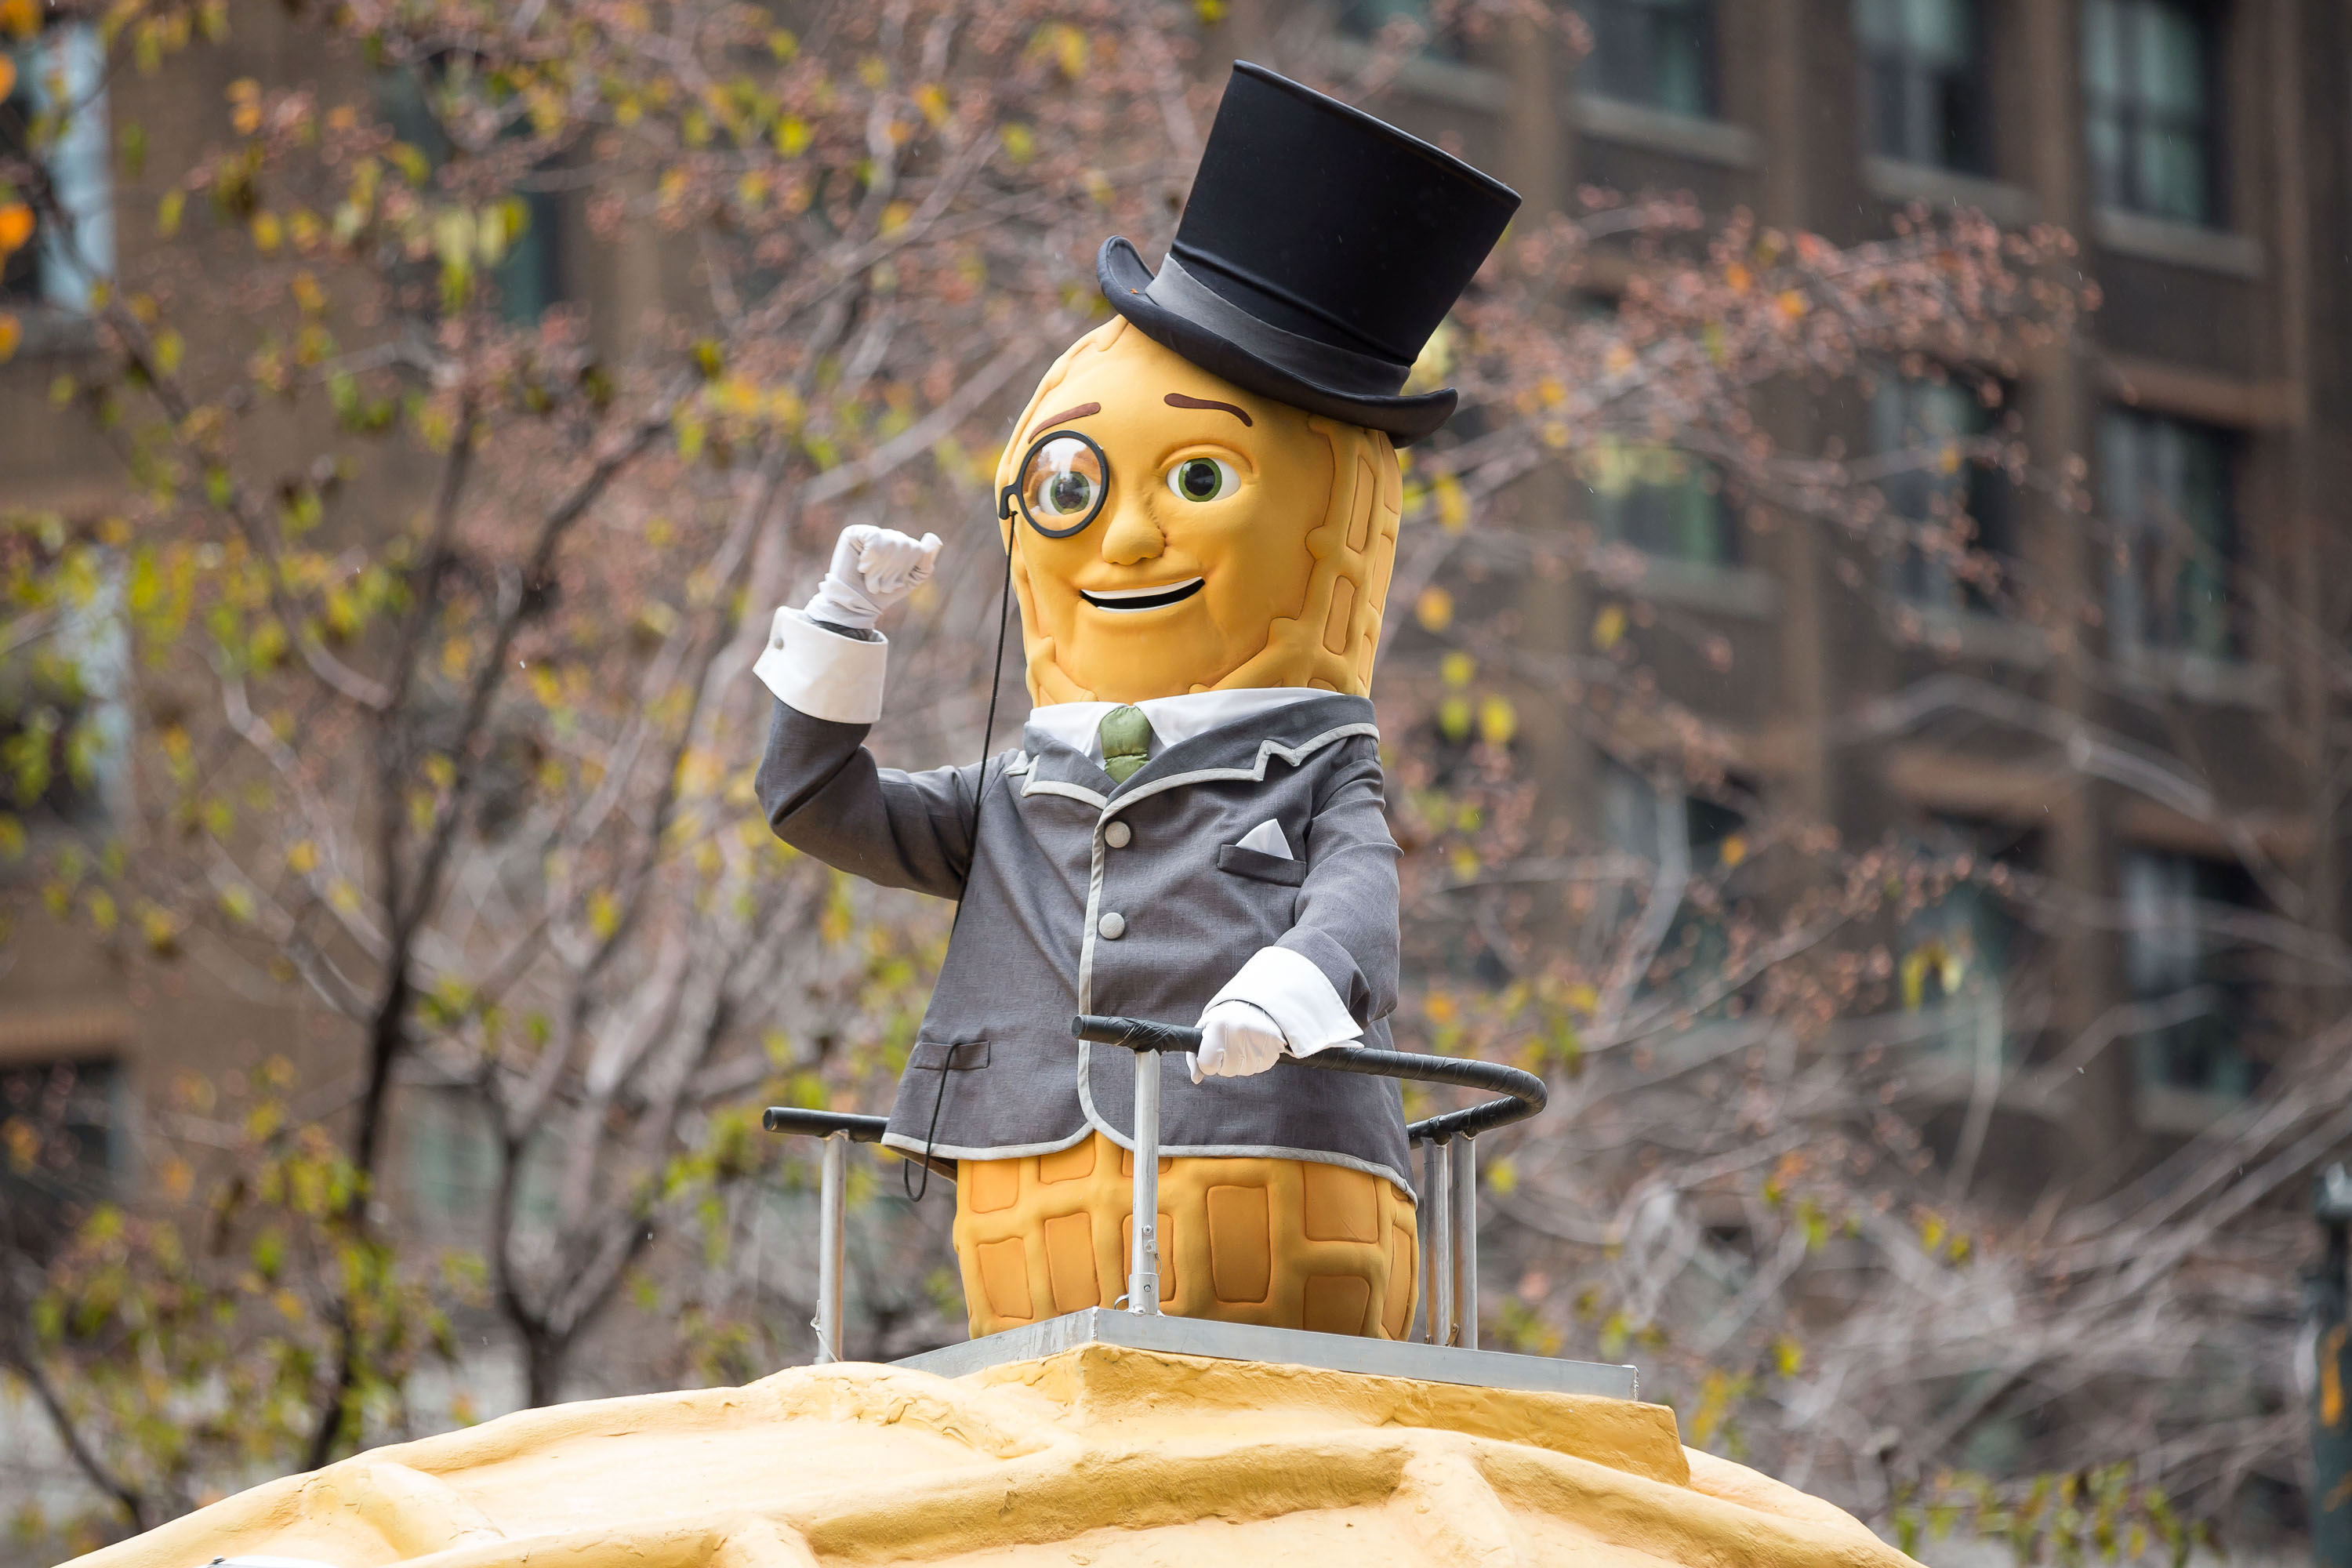 Planters' Mr. Peanut mascot standing on a Nutmobile float in a parade.